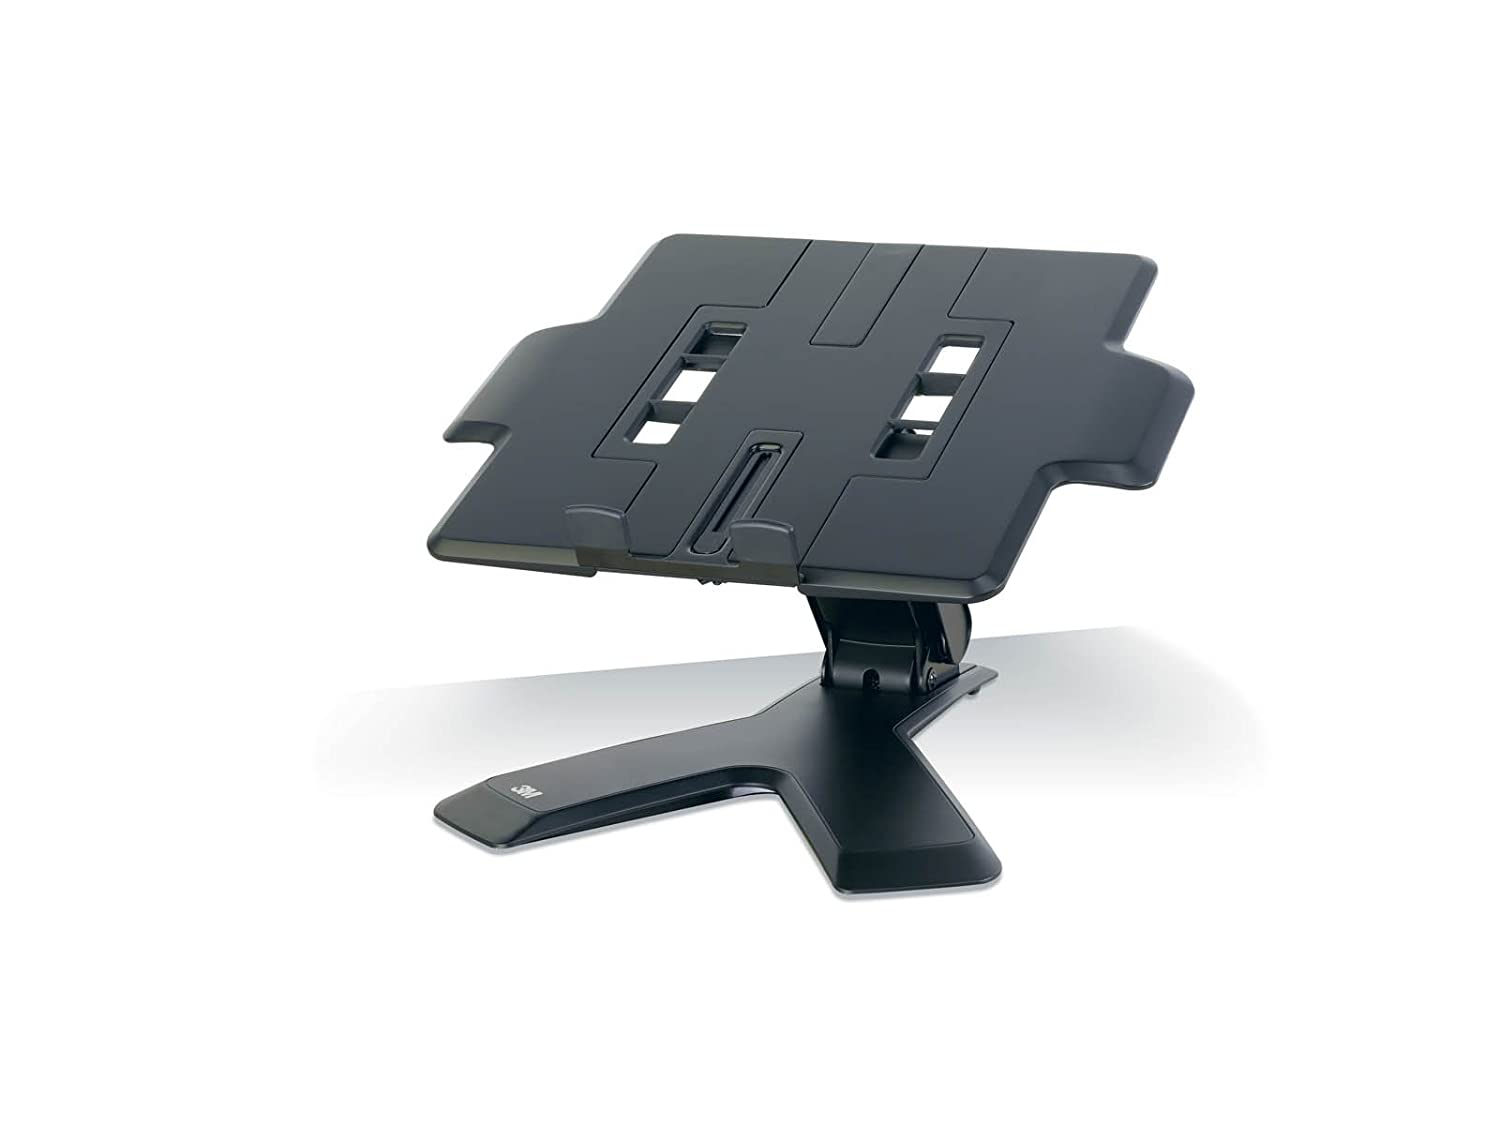 benq how to adjust stand